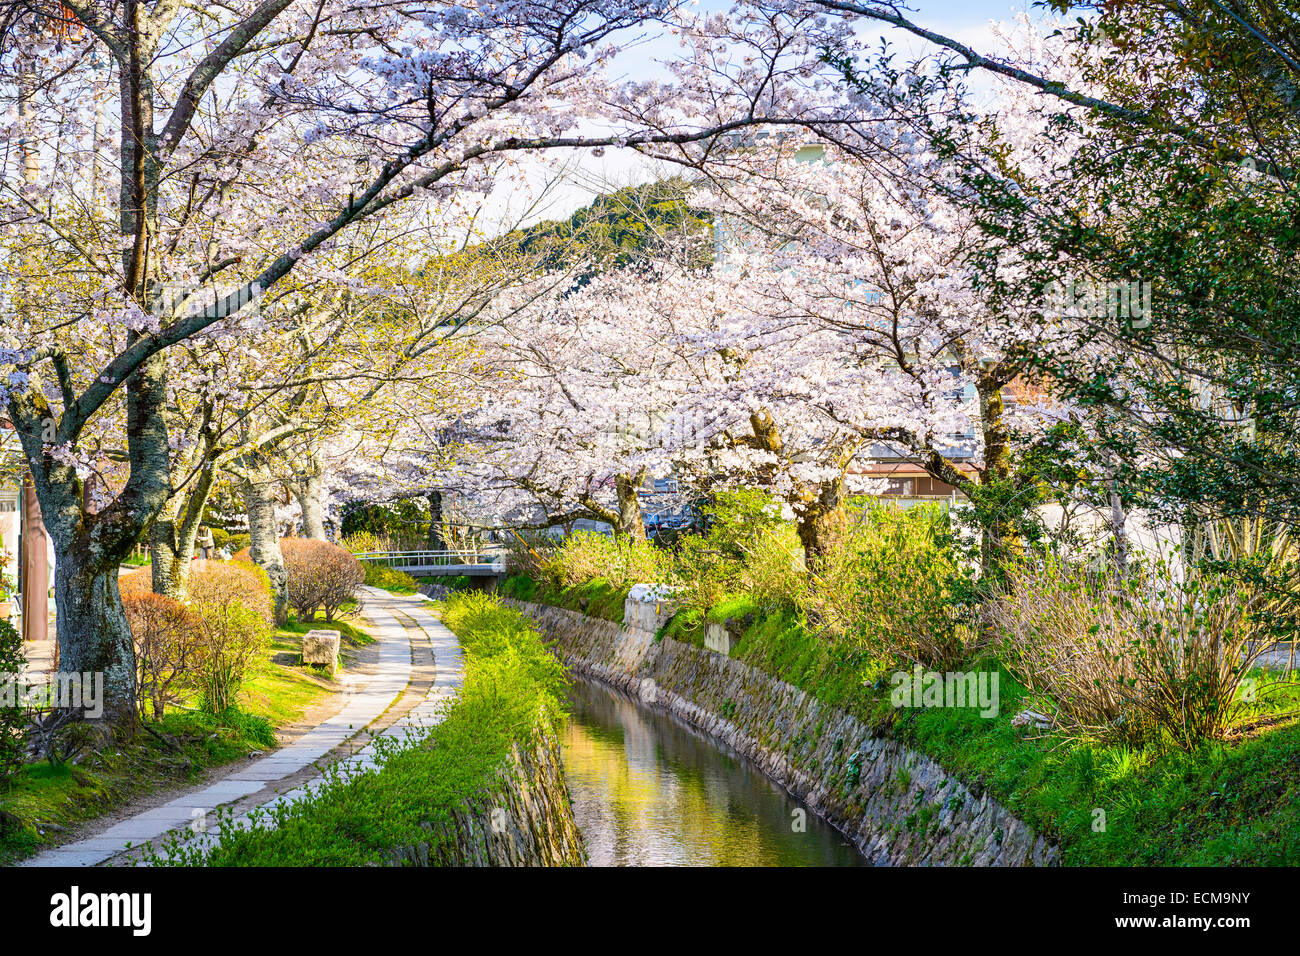 Kyoto, Japan at Philosopher's Way in the Springtime. - Stock Image